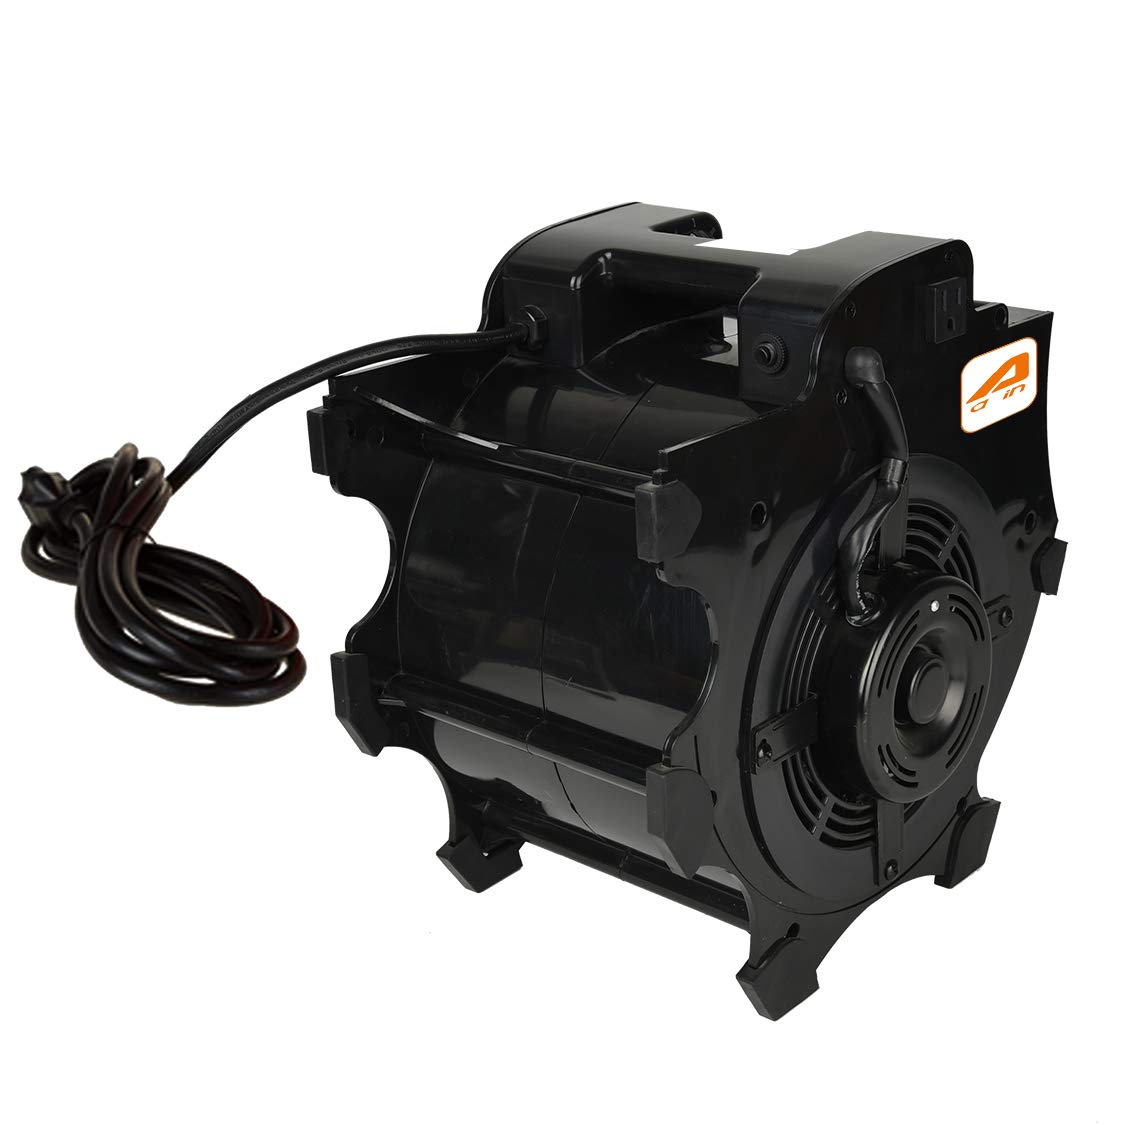 AAIN LT014 High Velocity Blower Fan,Industrial Air Mover,Utility ElectrIc Carpet Dryer Ideal for Wet Carpets, Floors,Walls & Ceilings- 3-speed,300 CFM,1/4 HP